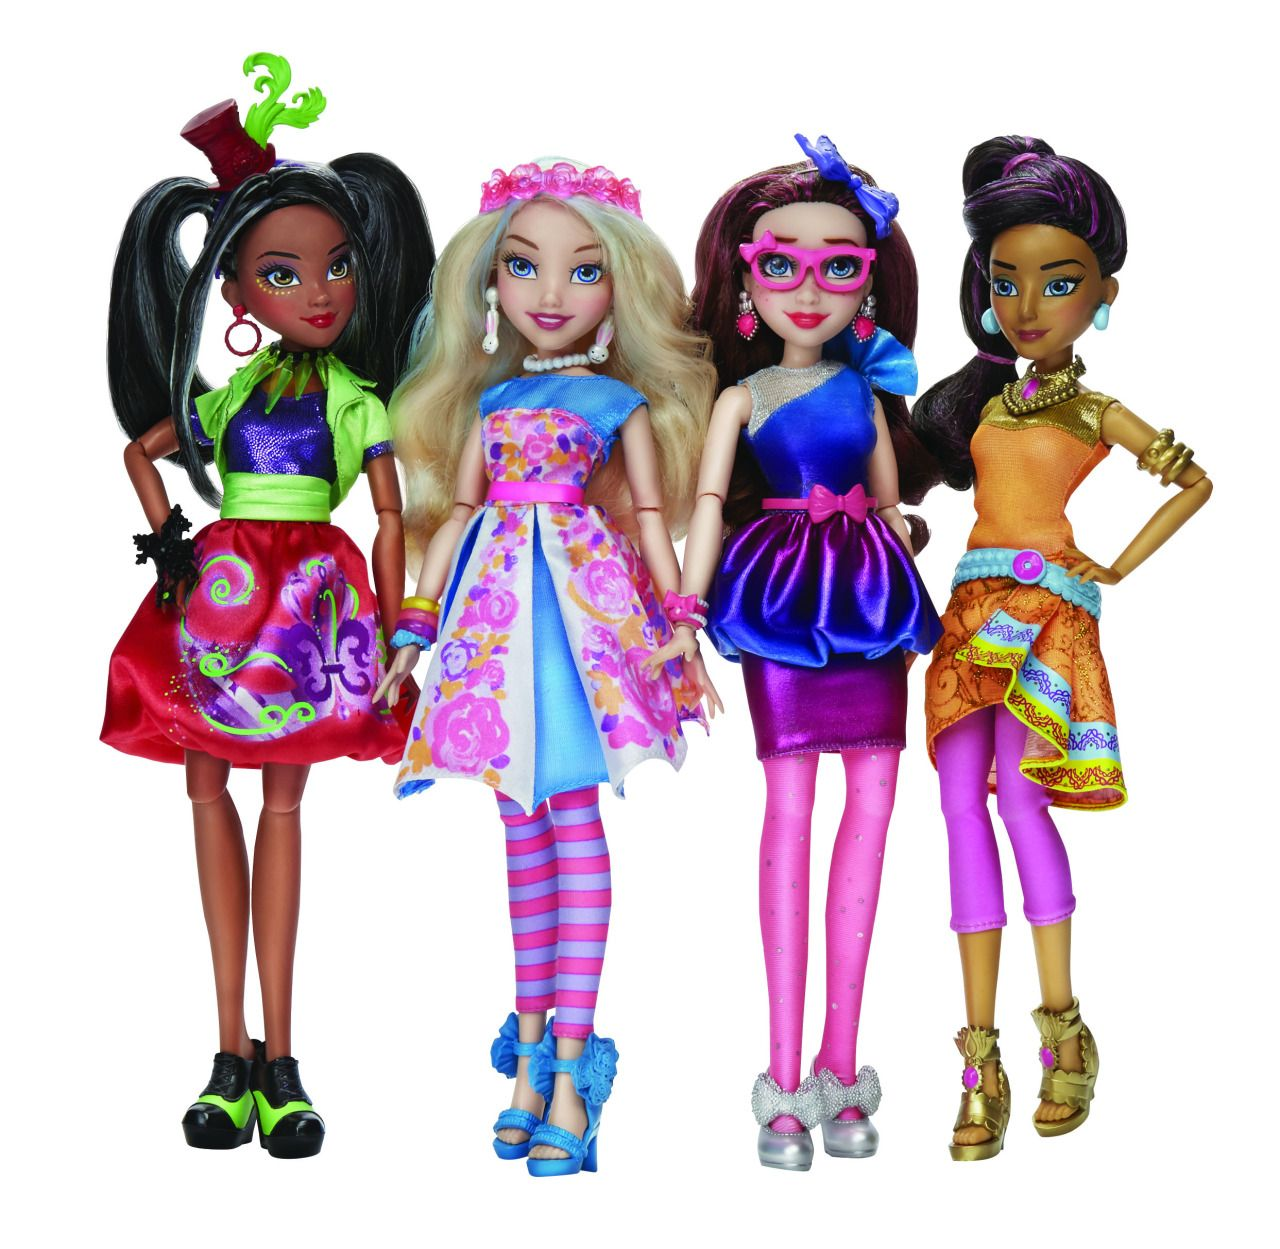 Tumblr O2g47kzdwz1qfw5two1 1280 Jpg 1 280 1 249 Pixels Disney Descendants Dolls American Girl Doll American Girl Doll Hairstyles